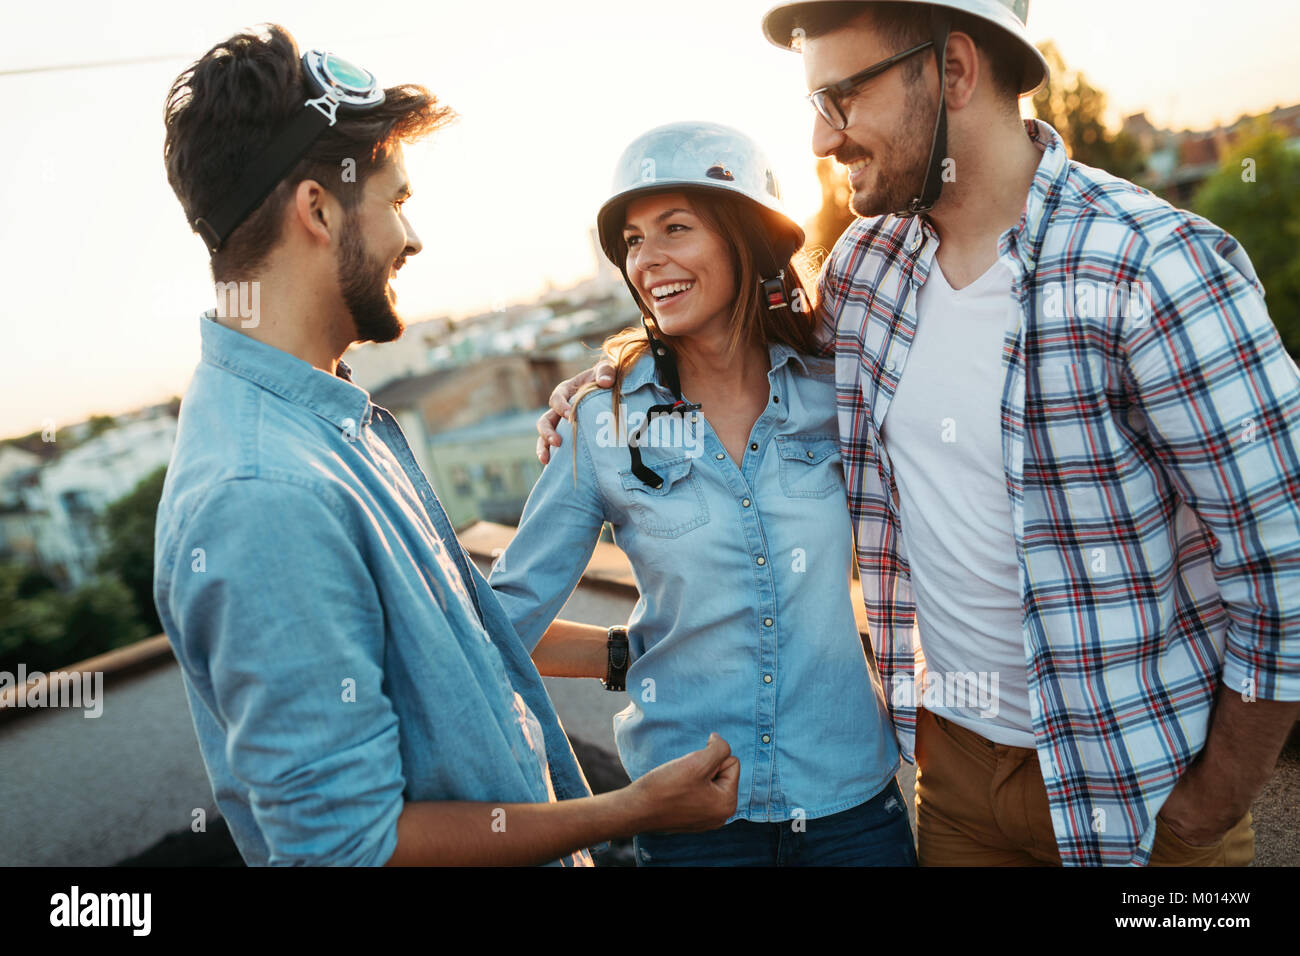 Happy friends laughing and smiling outdoors - Stock Image